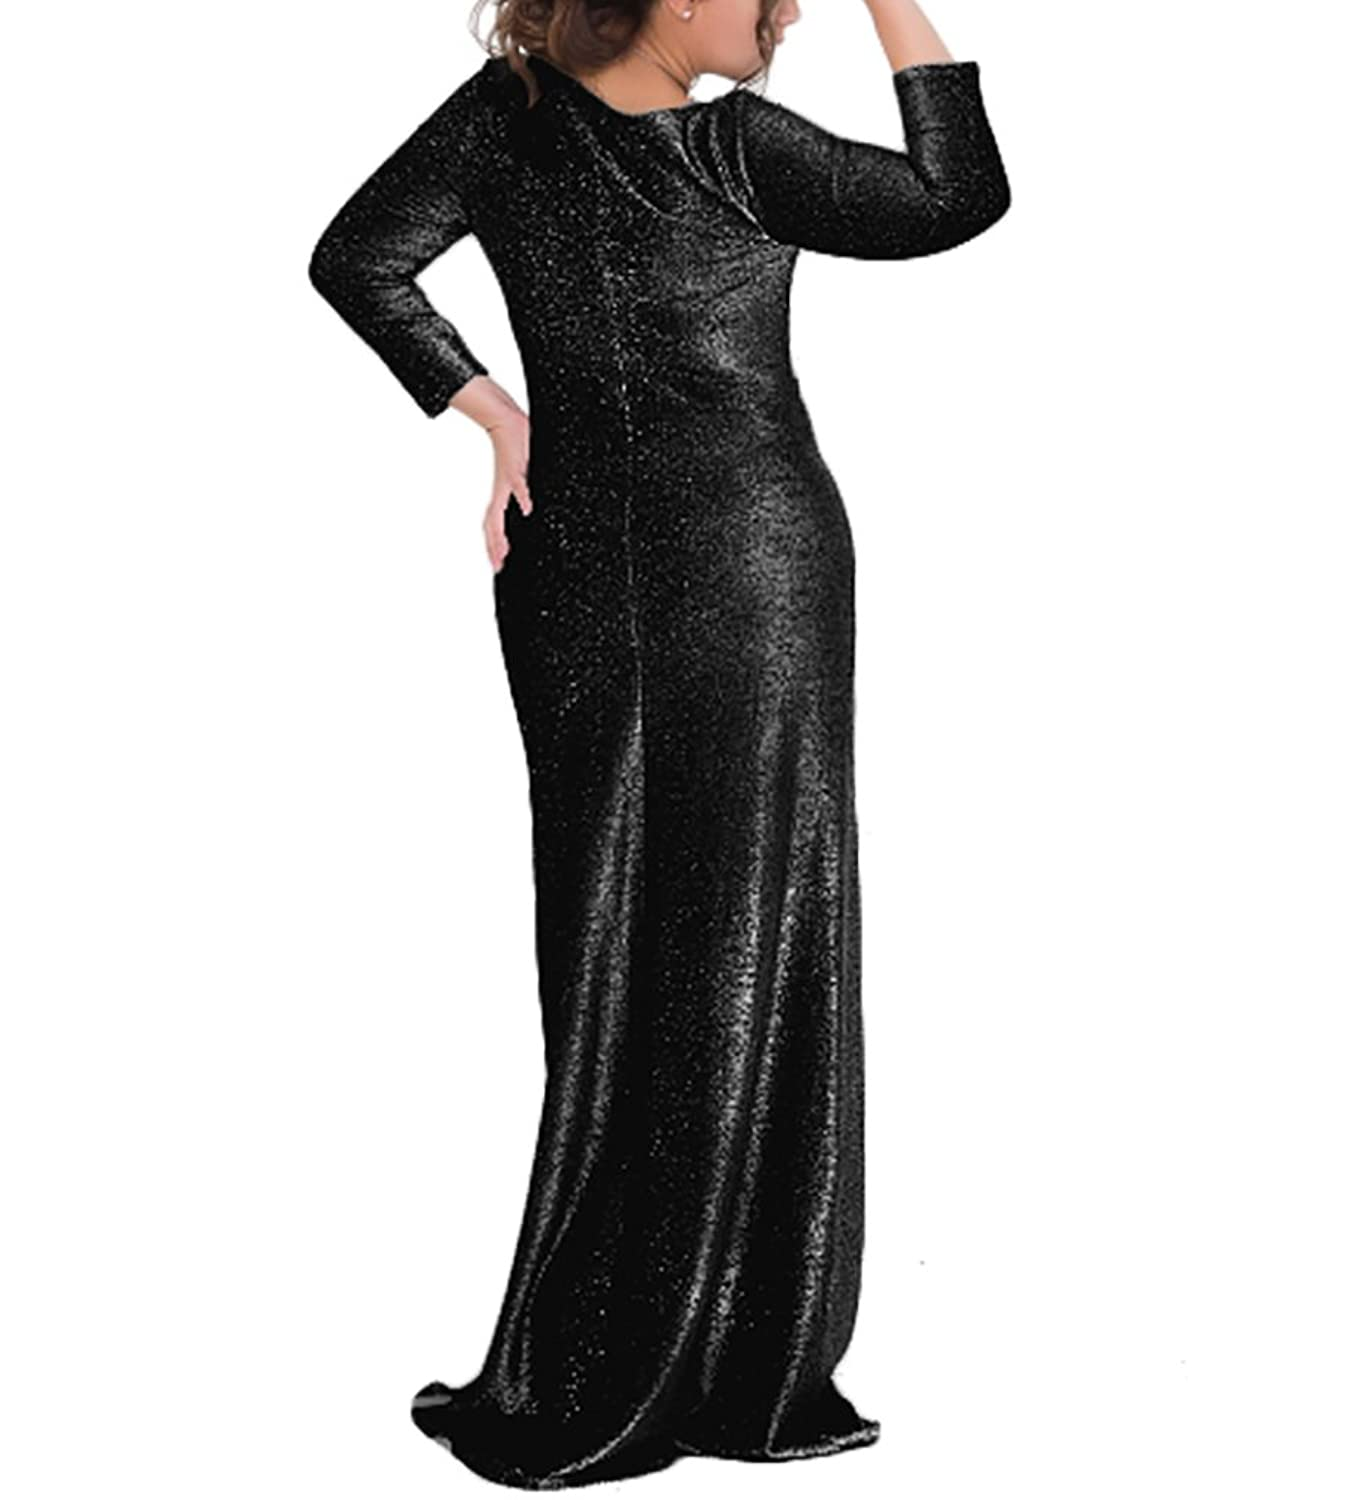 COCOEPPS Womens Plus Size Long Sleeve Shiny Evening Party Maxi Dresses Christmas Dresses at Amazon Womens Clothing store: